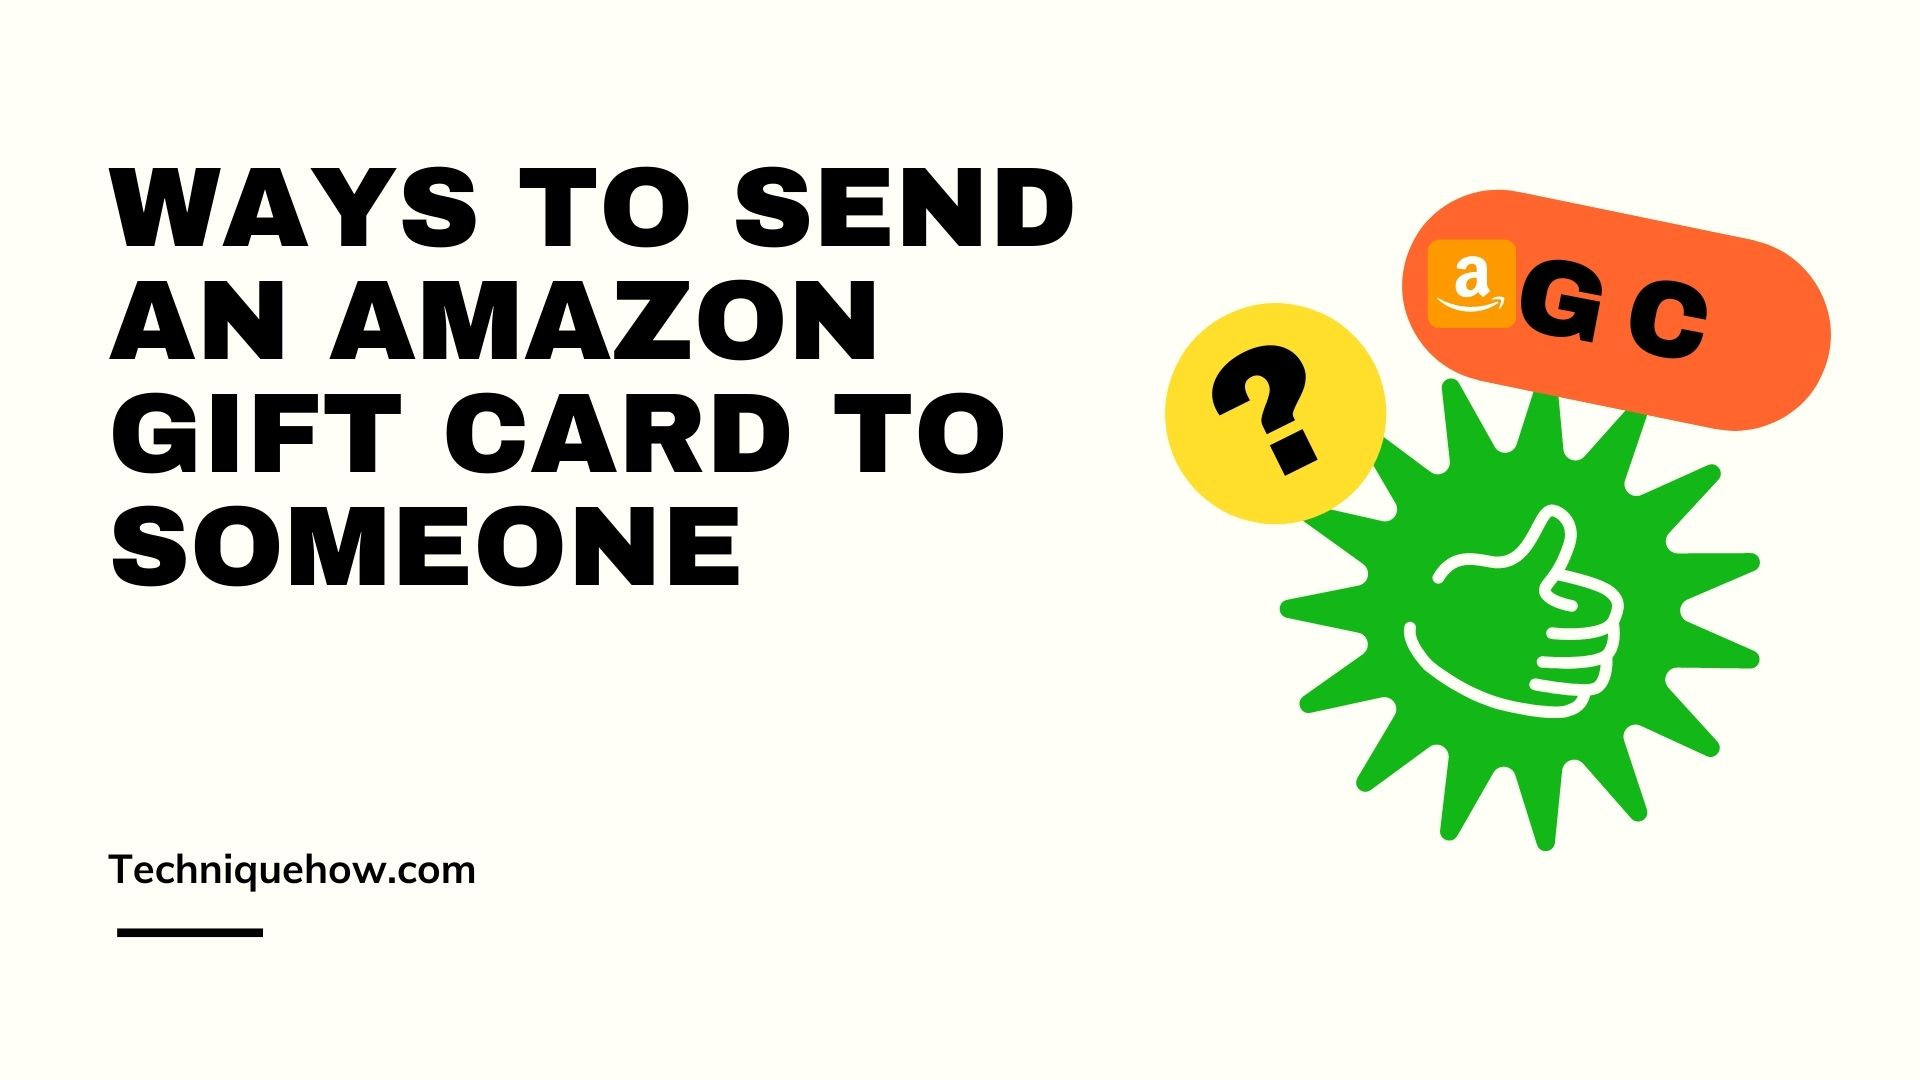 Send an Amazon Gift Card To Someone